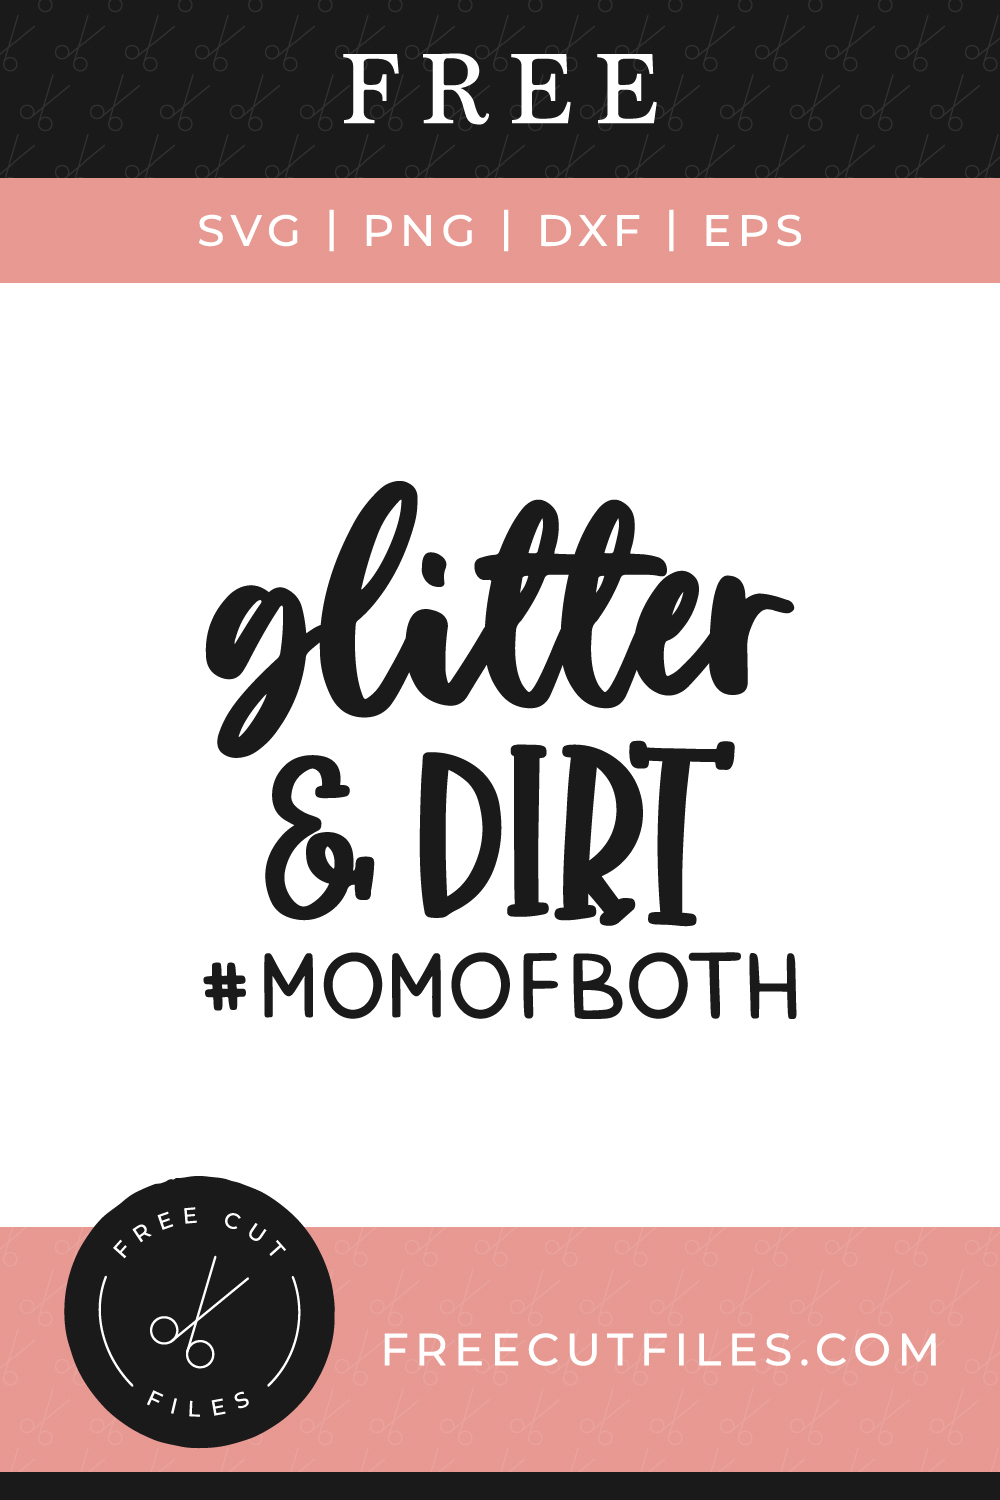 Free Glitter and Dirt SVG quote #momofboth